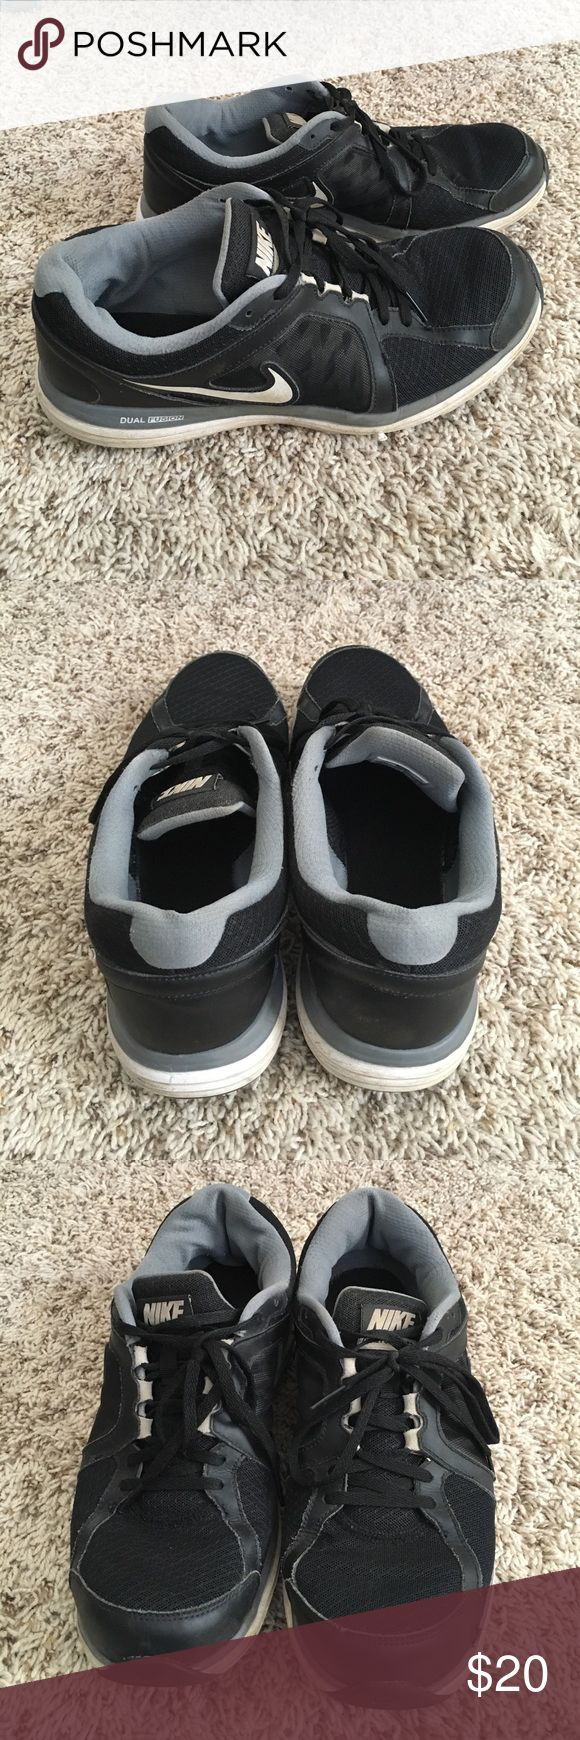 Black & White Nike DUAL Fusion Shoes Size 11.5 Size 11.5. Normal wear. Has some scuffs scratches Nike Shoes Sneakers